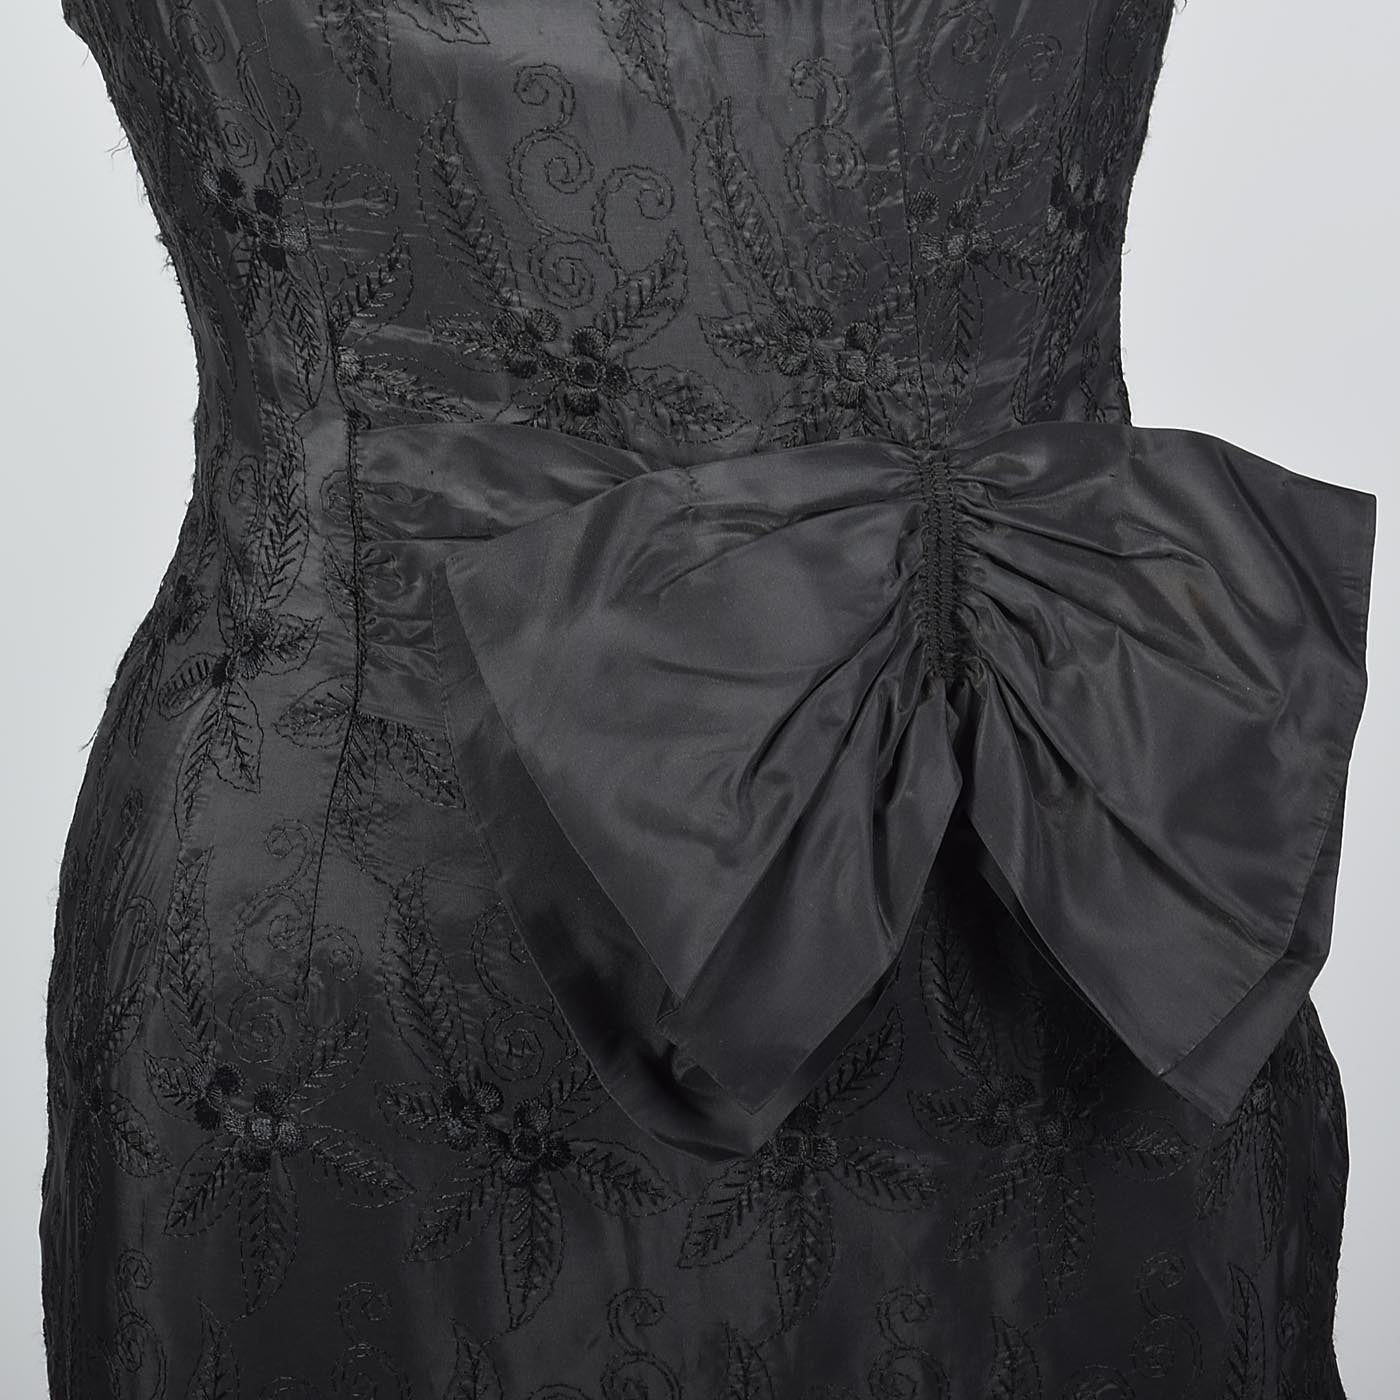 1950s Black Dress with Black Floral Embroidery